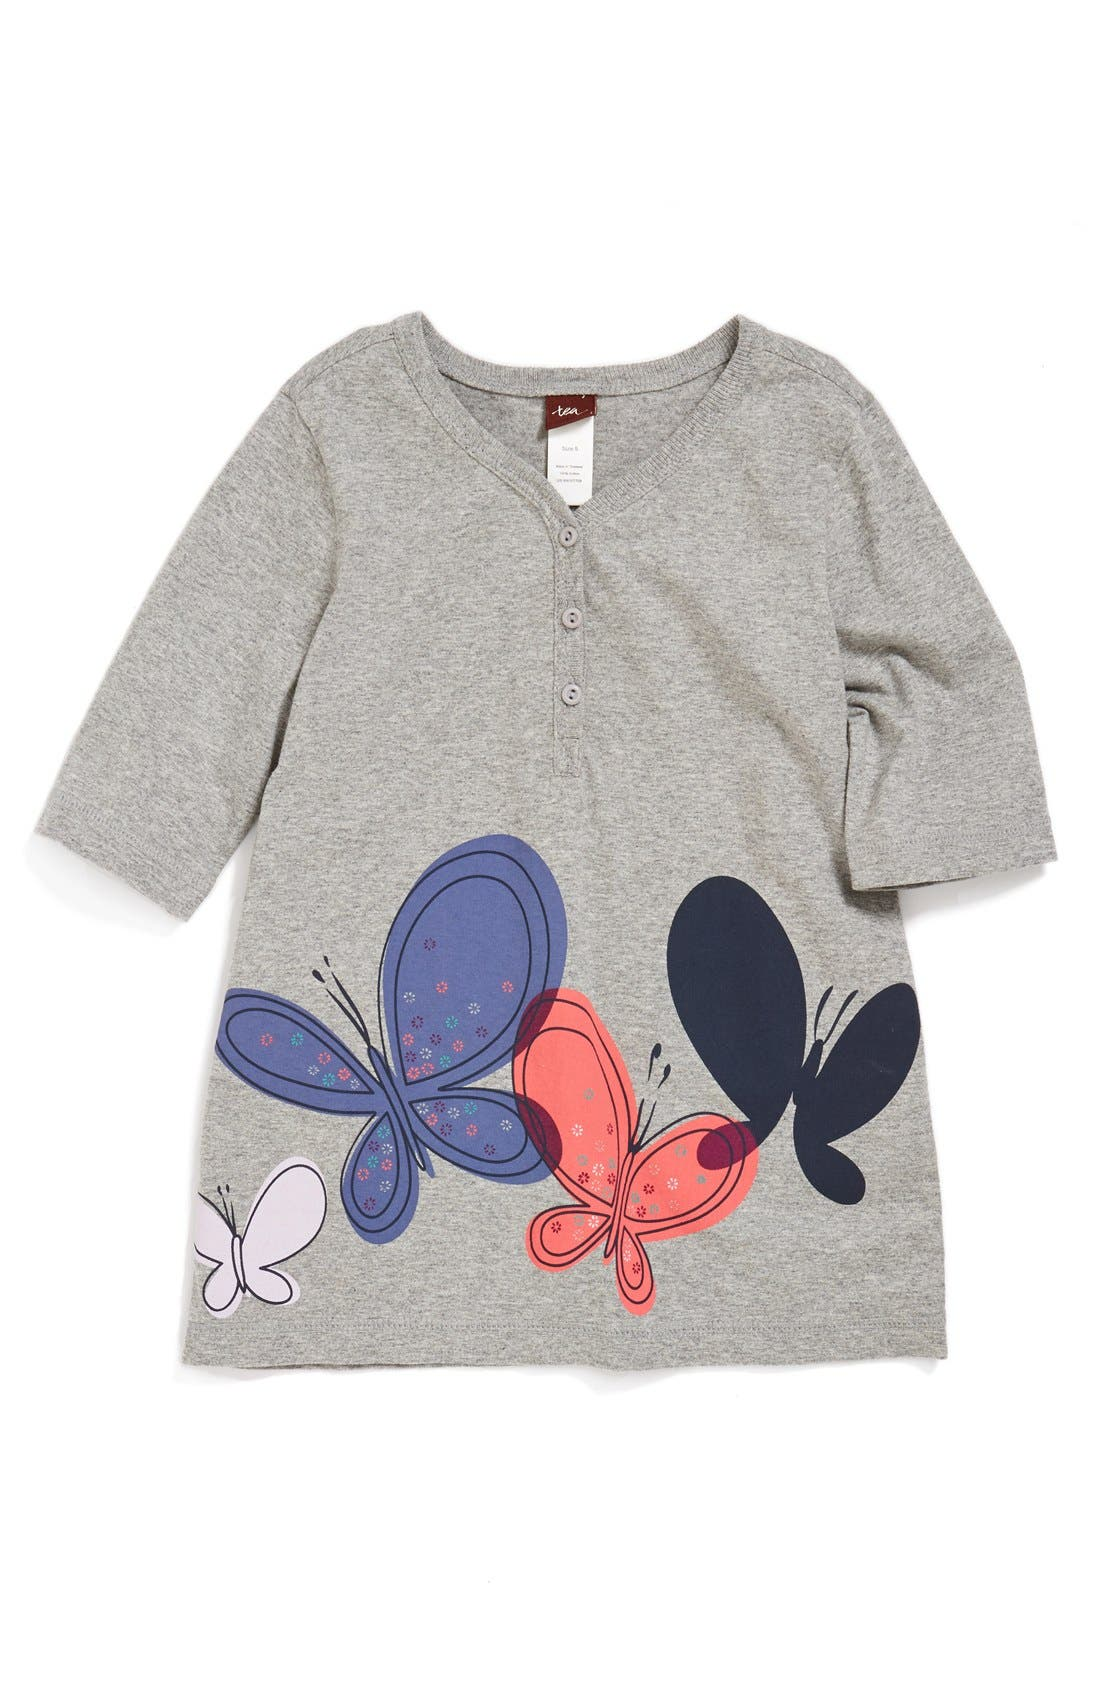 Alternate Image 1 Selected - Tea Collection 'Schmetterling' Henley Tee (Toddler Girls, Little Girls & Big Girls)